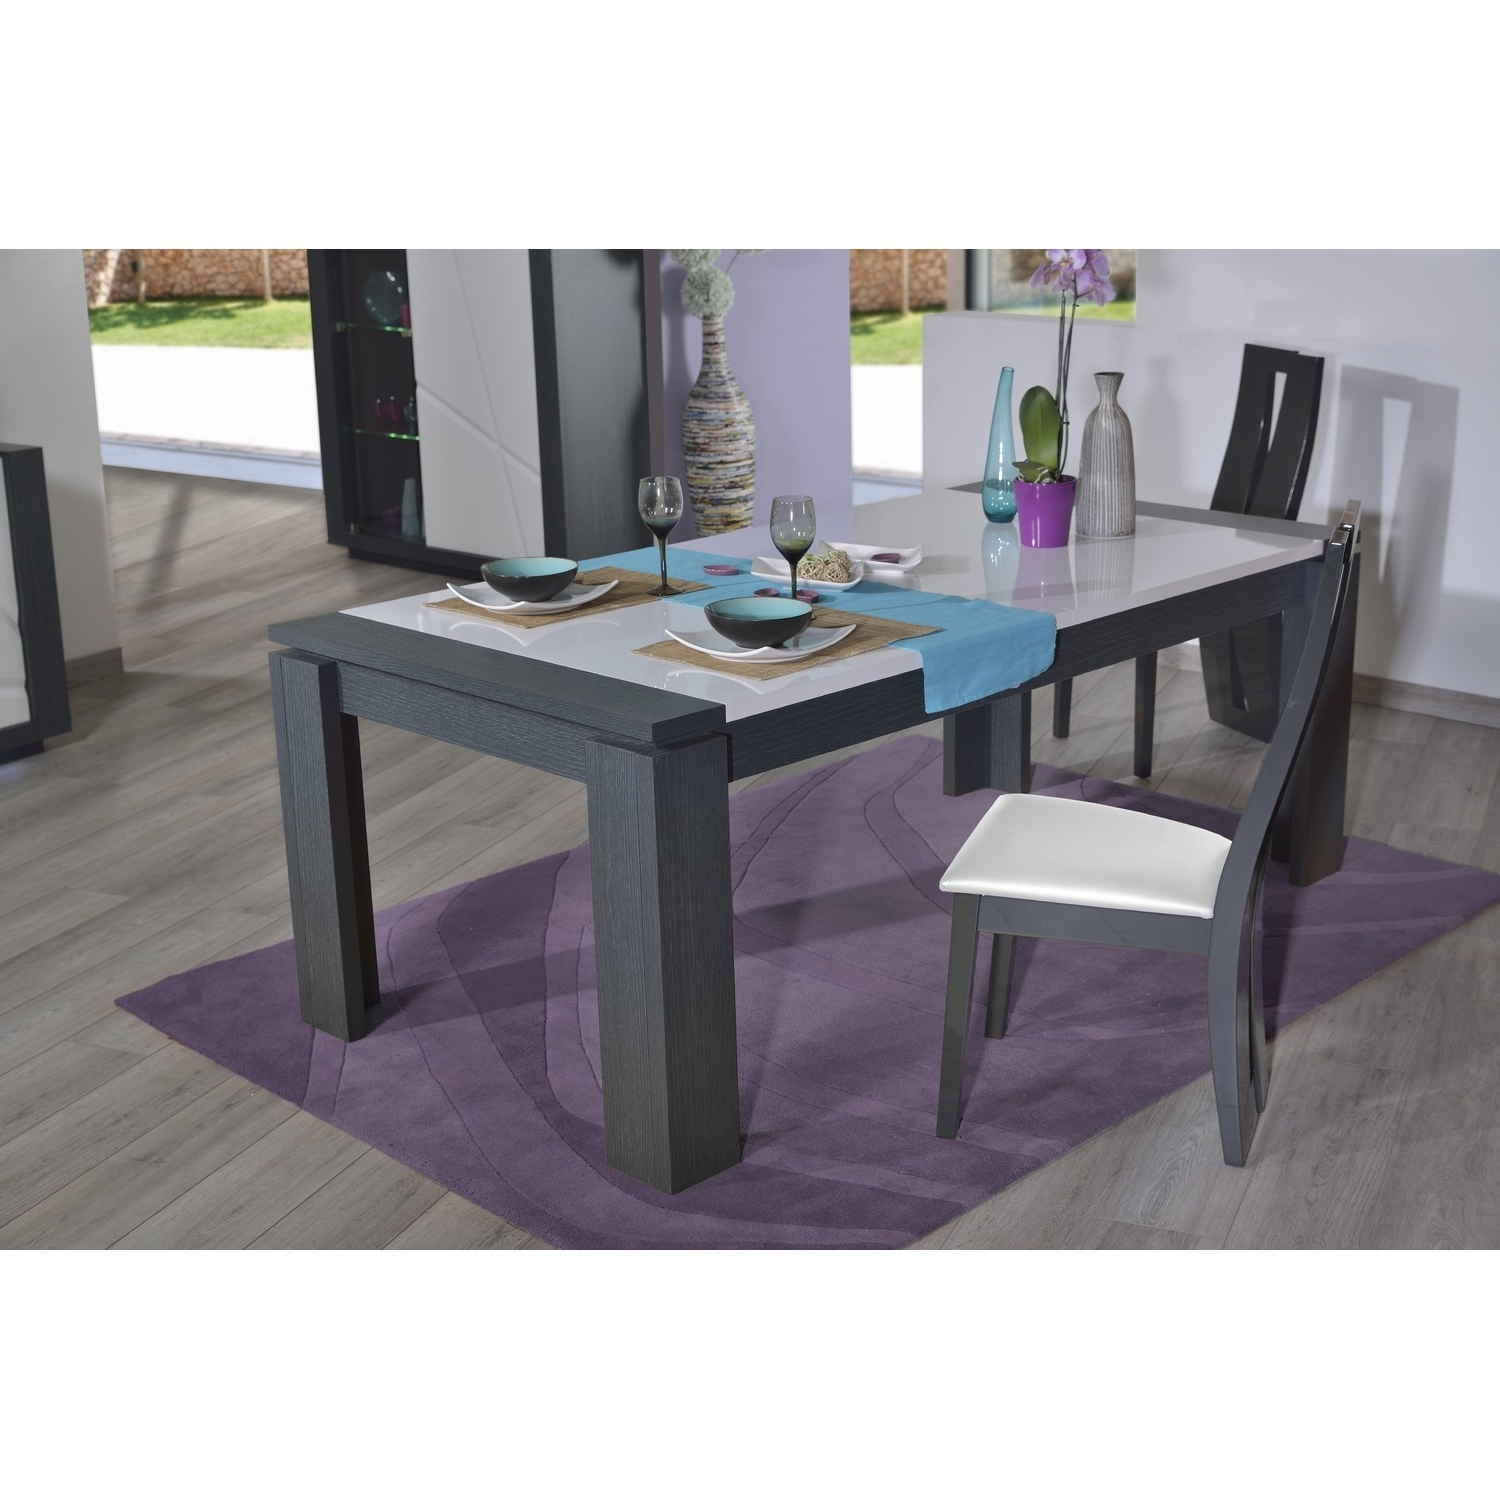 Fashionable Dark Wood Extending Dining Tables With Quartz Extendable Dining Table With Dark Wood Body – Dining Tables (View 14 of 25)